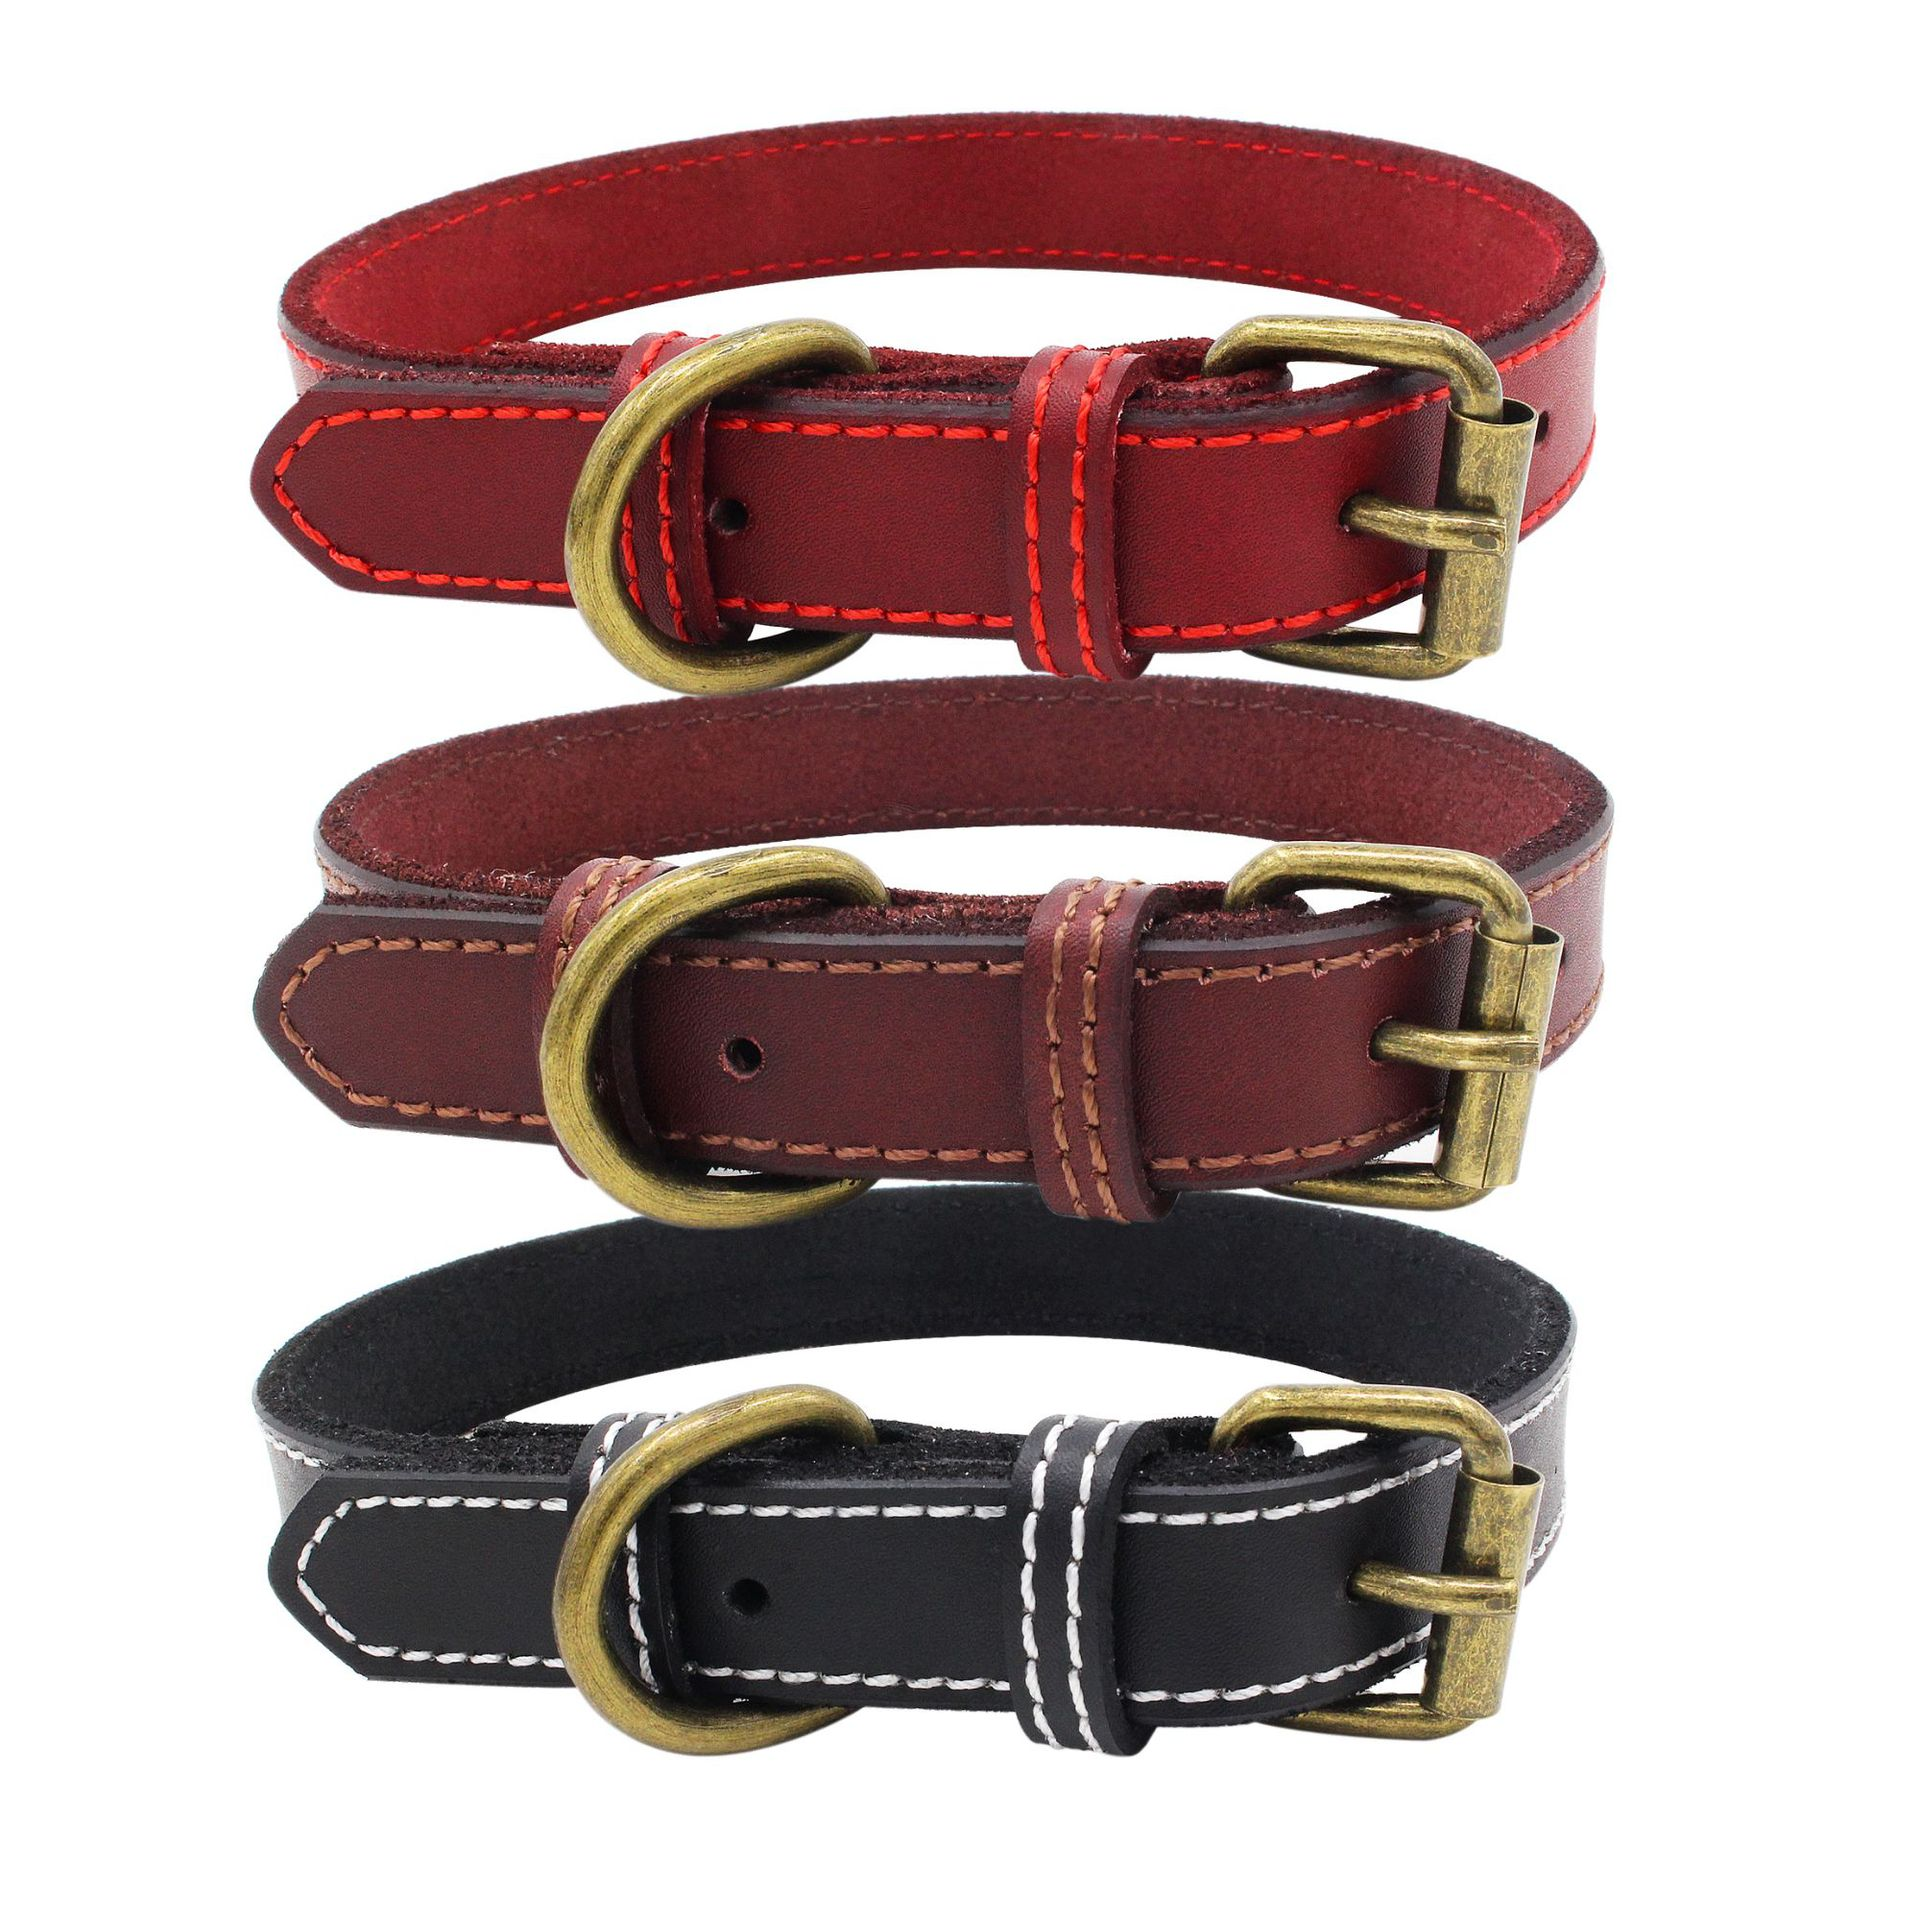 Pure Cowhide Bite-proof Protector Bronze Retro Pet Collar Natural Leather Dog Neck Ring Cow Leather Collar Factory Currently Ava